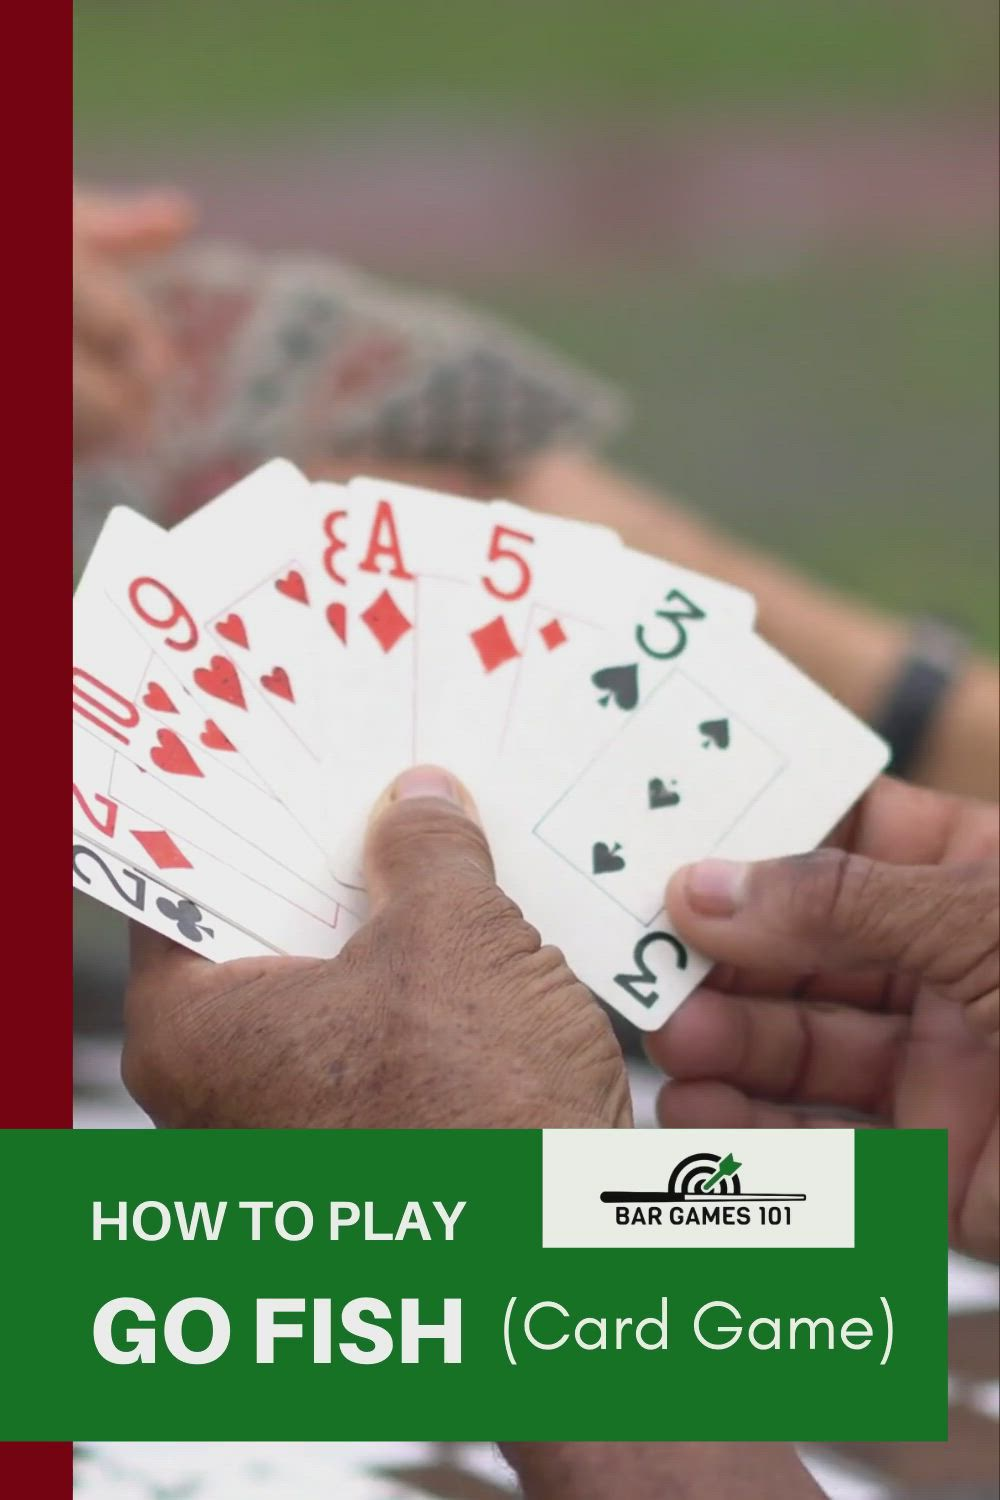 How To Play Go Fish Card Game Go Fish Rules Video Video Card Games Fishing Cards Play N Go